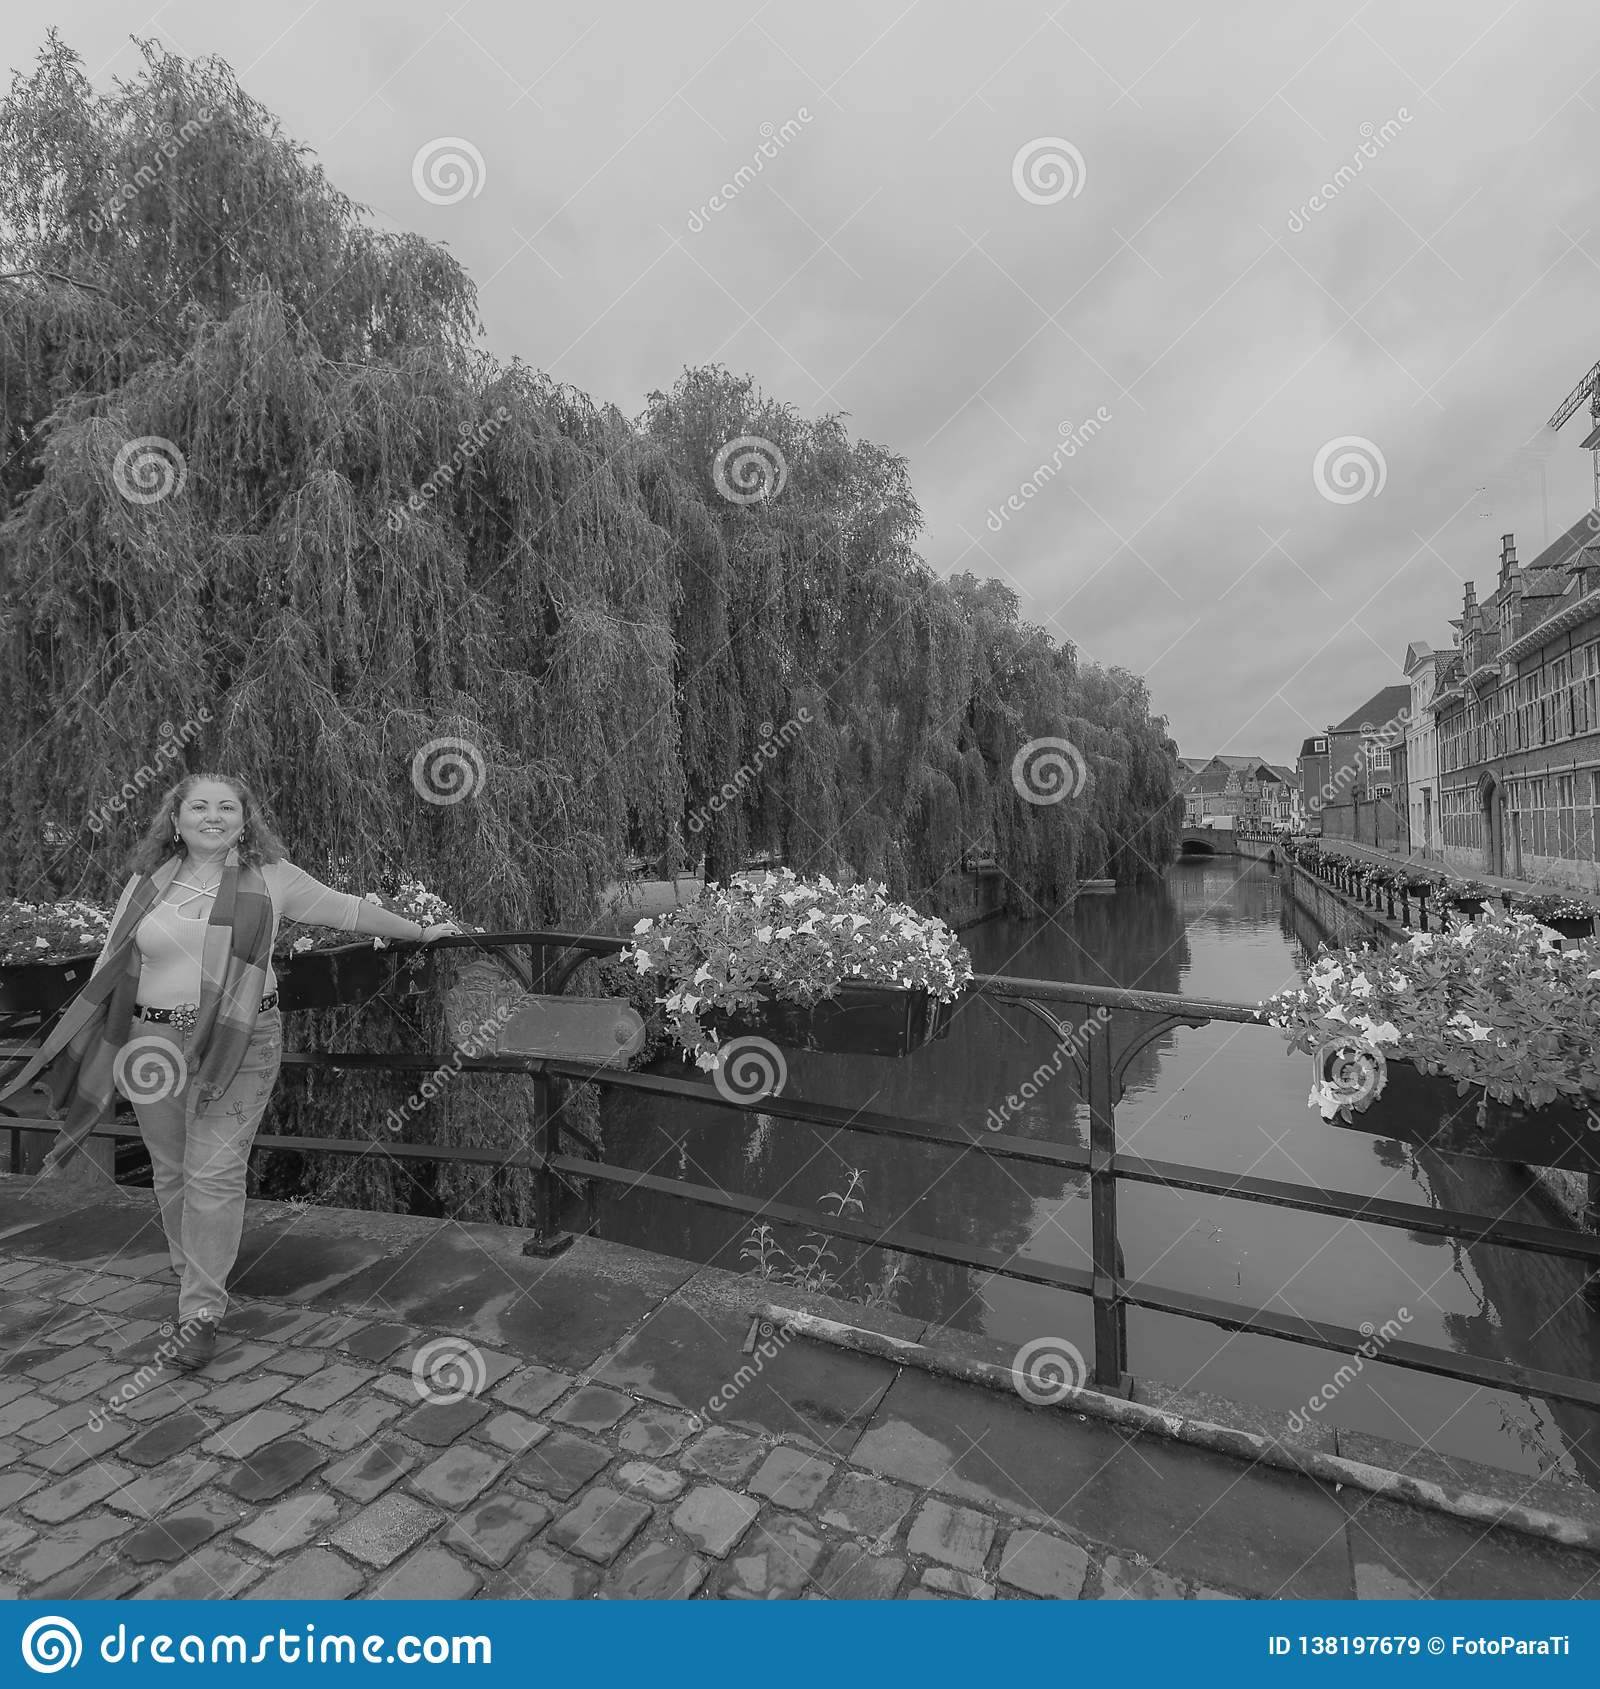 Image of a woman leaning on a metal fence on a bridge with a canal in the background